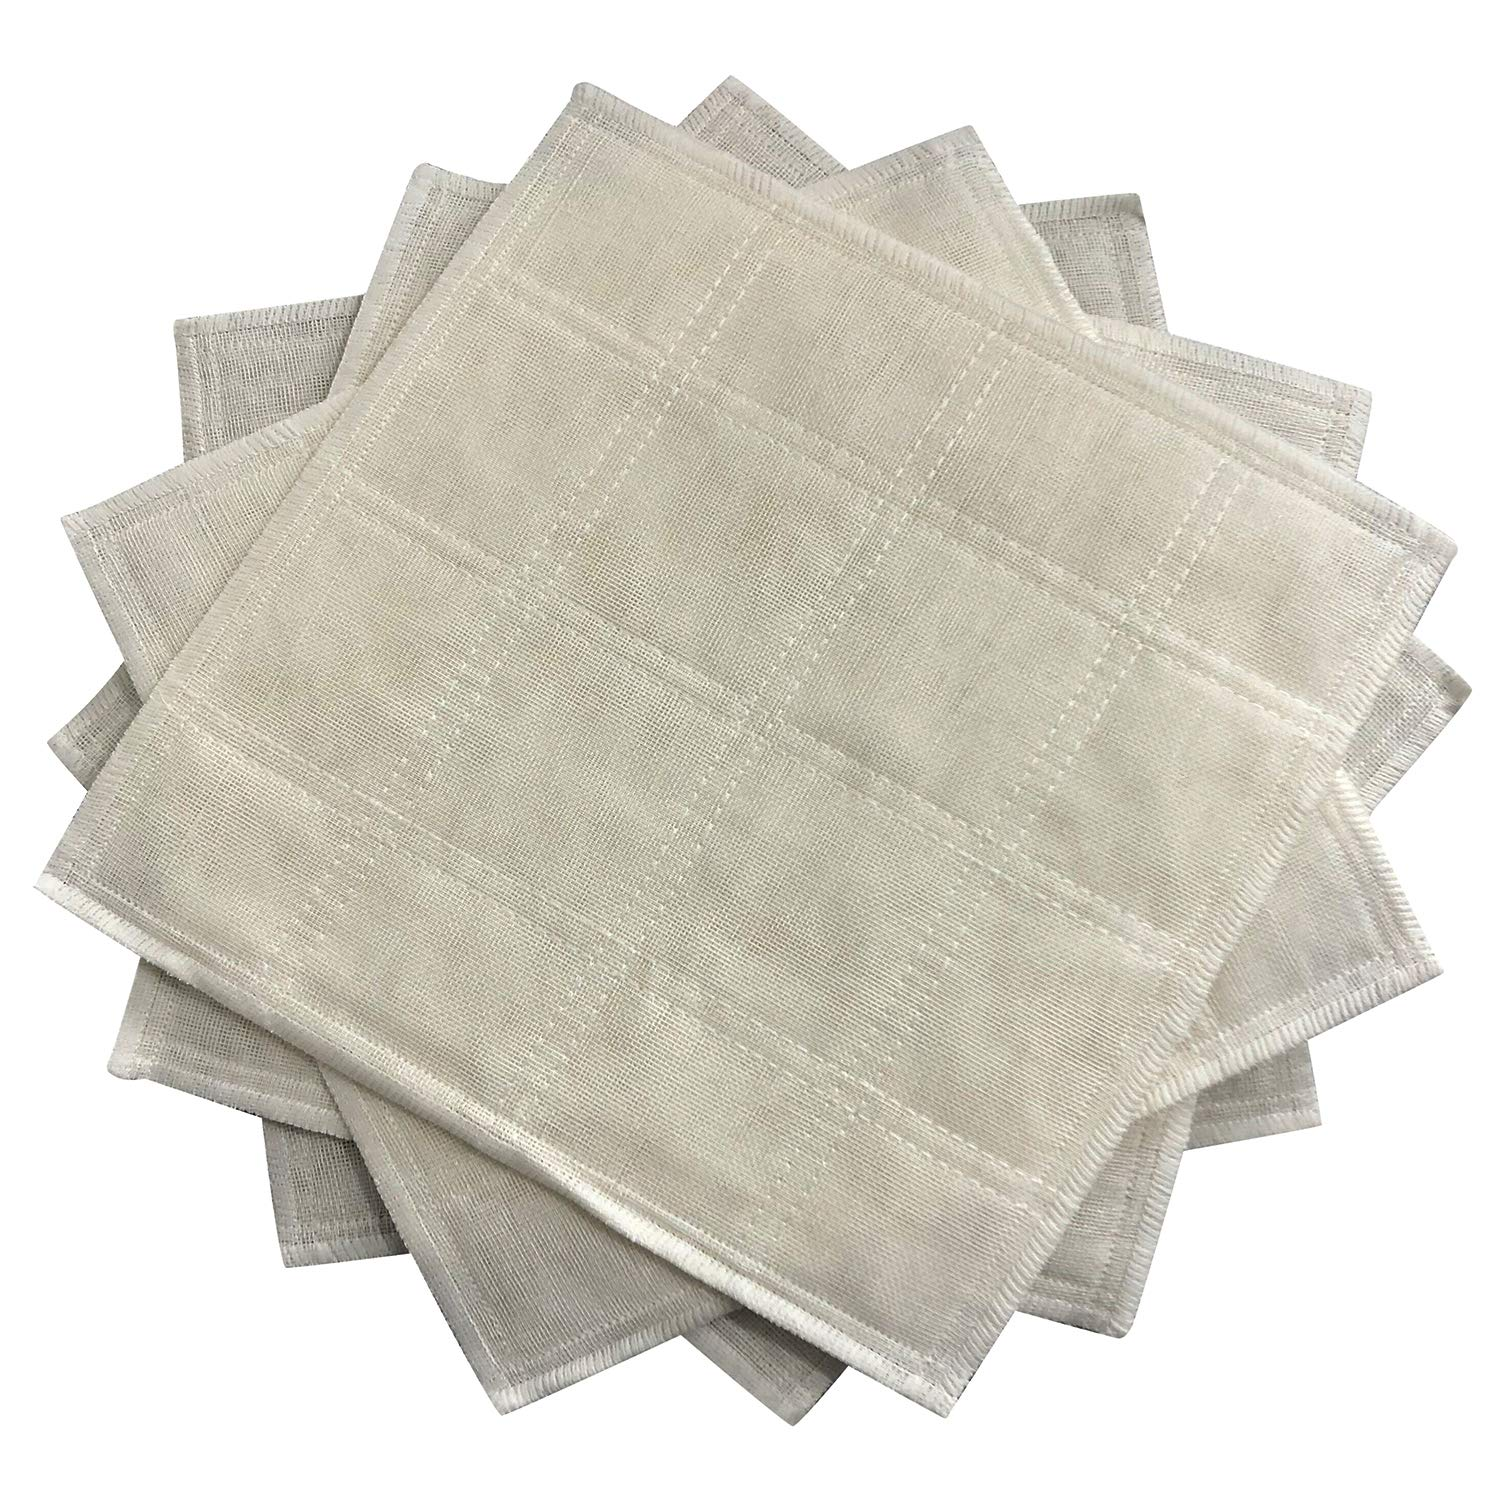 Washing. Scrubbing Hulless Dishcloths Cleaning Cloths 12 x 12 inch Scouring Cloth 100/% Cotton Scrubbing Cloth 5pcs Scrubbing Dishcloth Utensil Cleaning Cloth Apply to Cleaning Scouring Pads